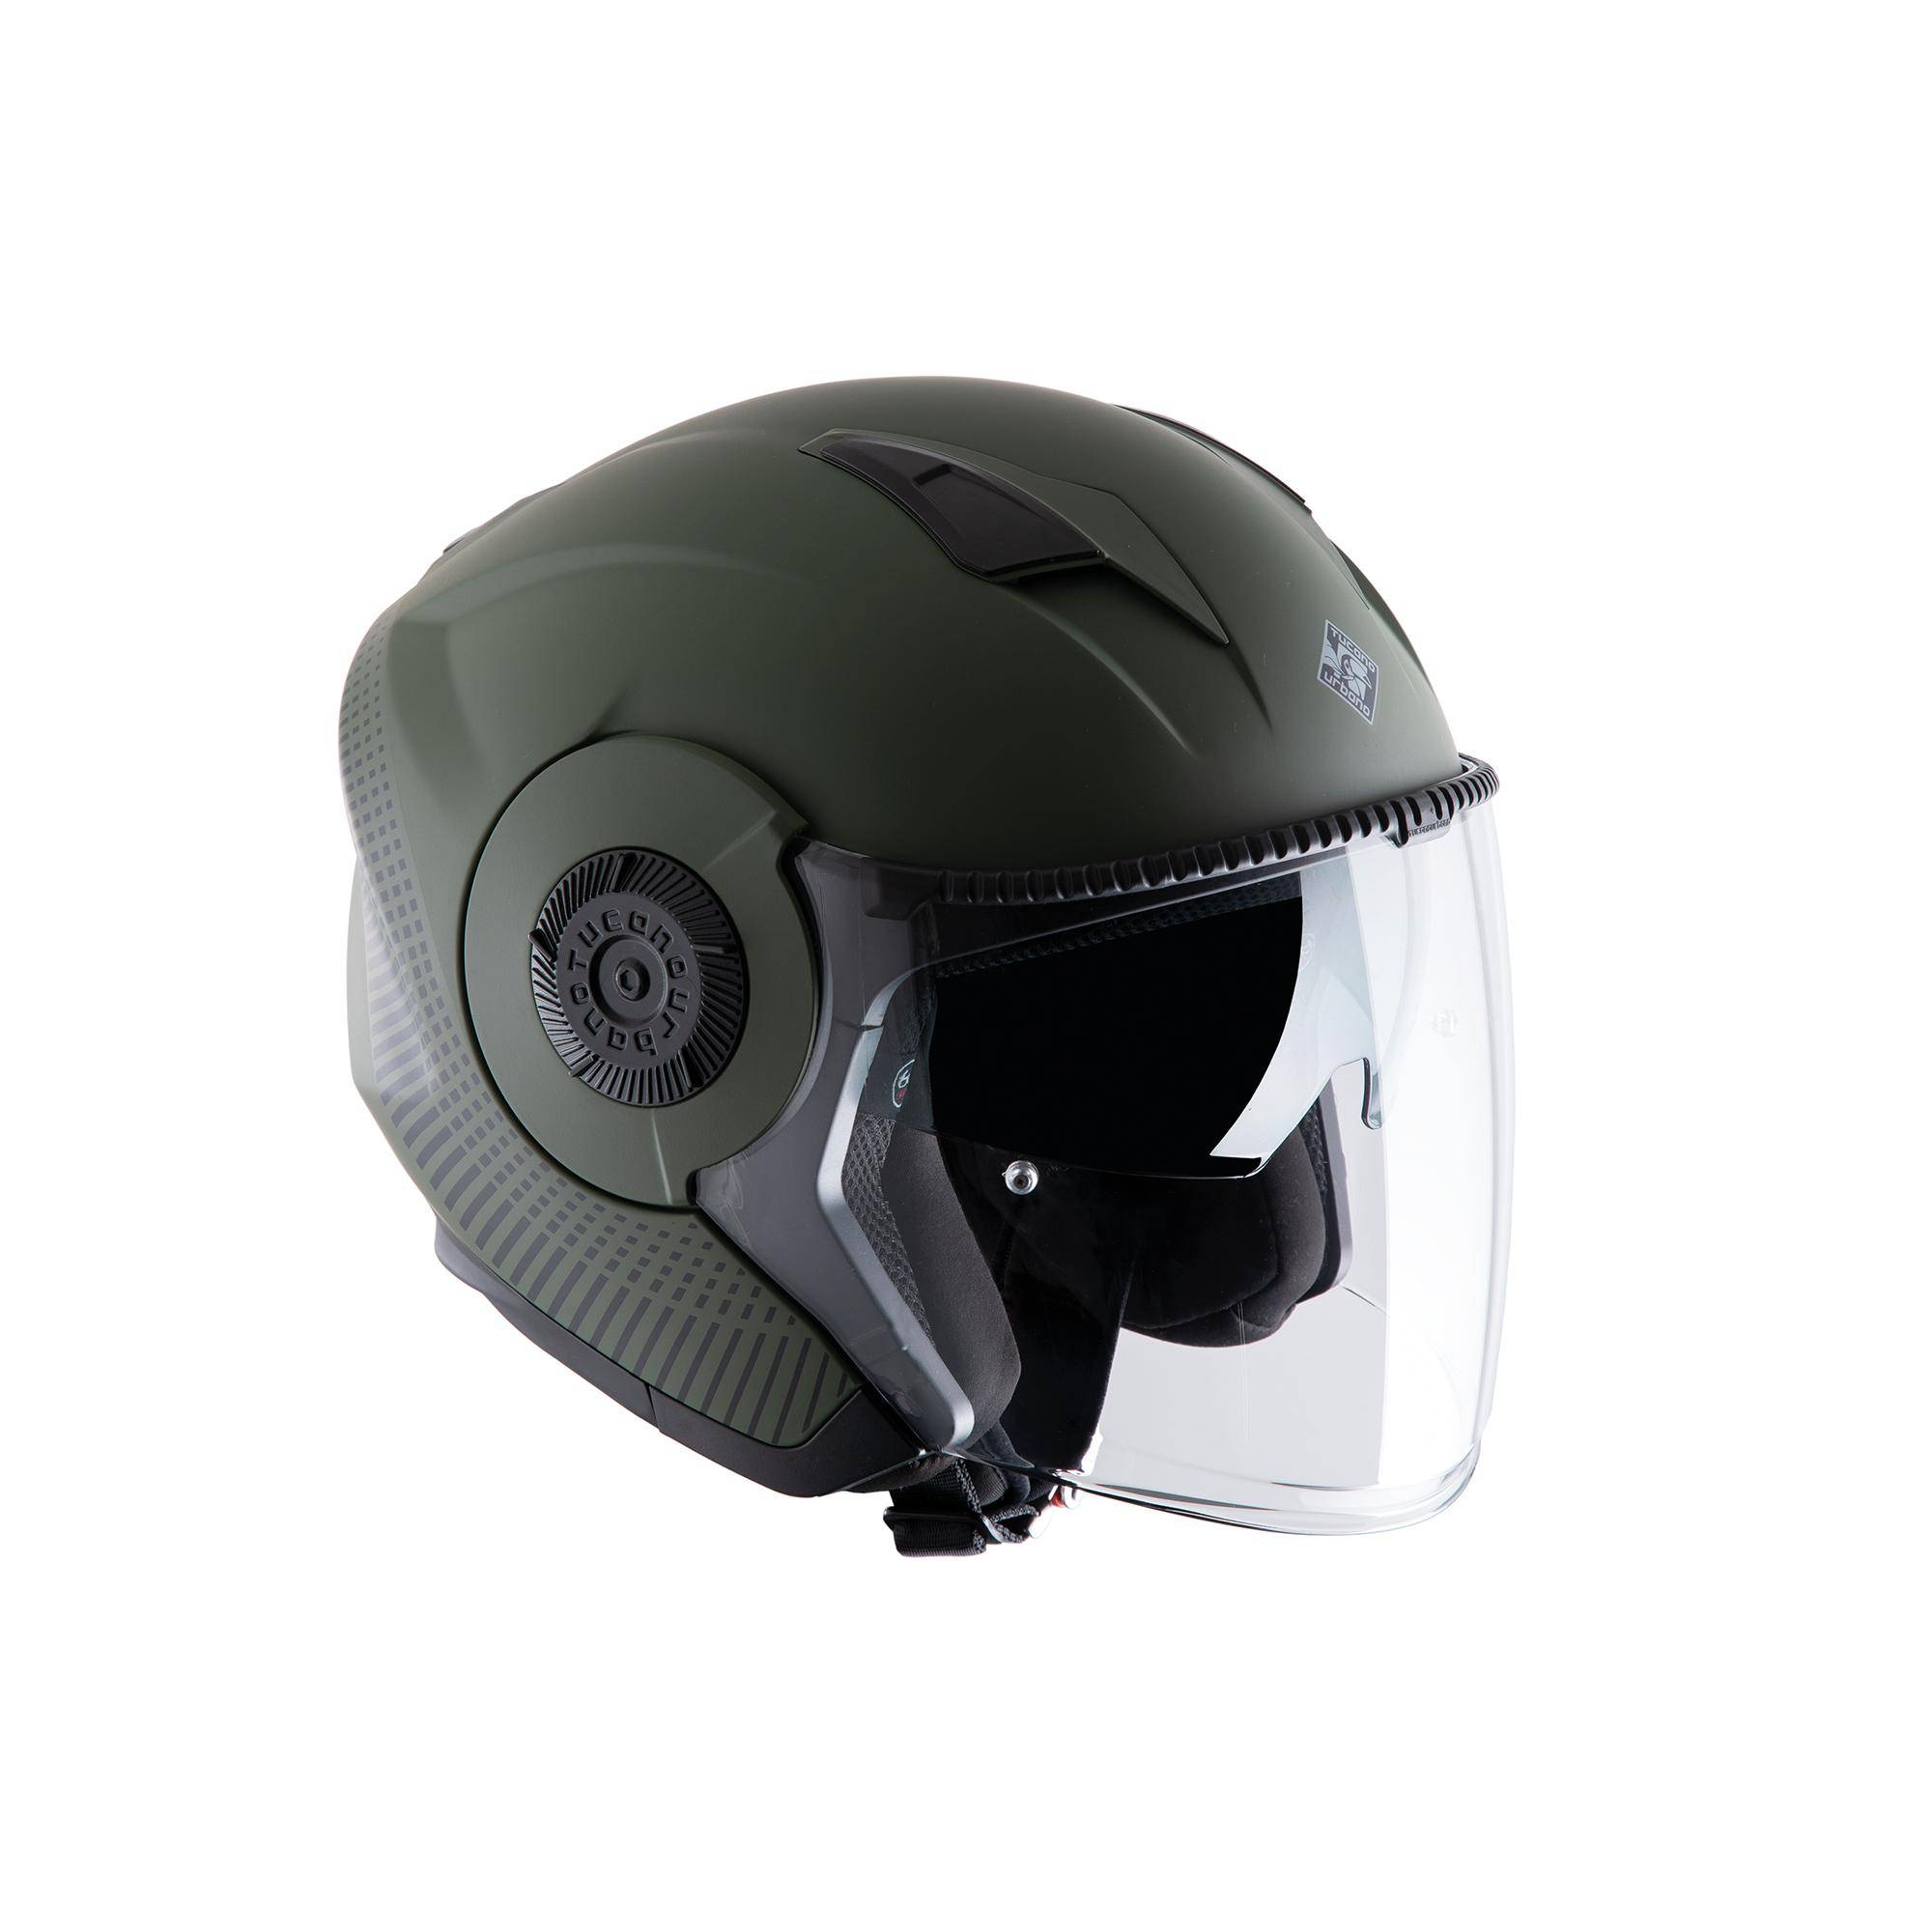 Casco El Tange Airborne Green Graphic–A Opaco